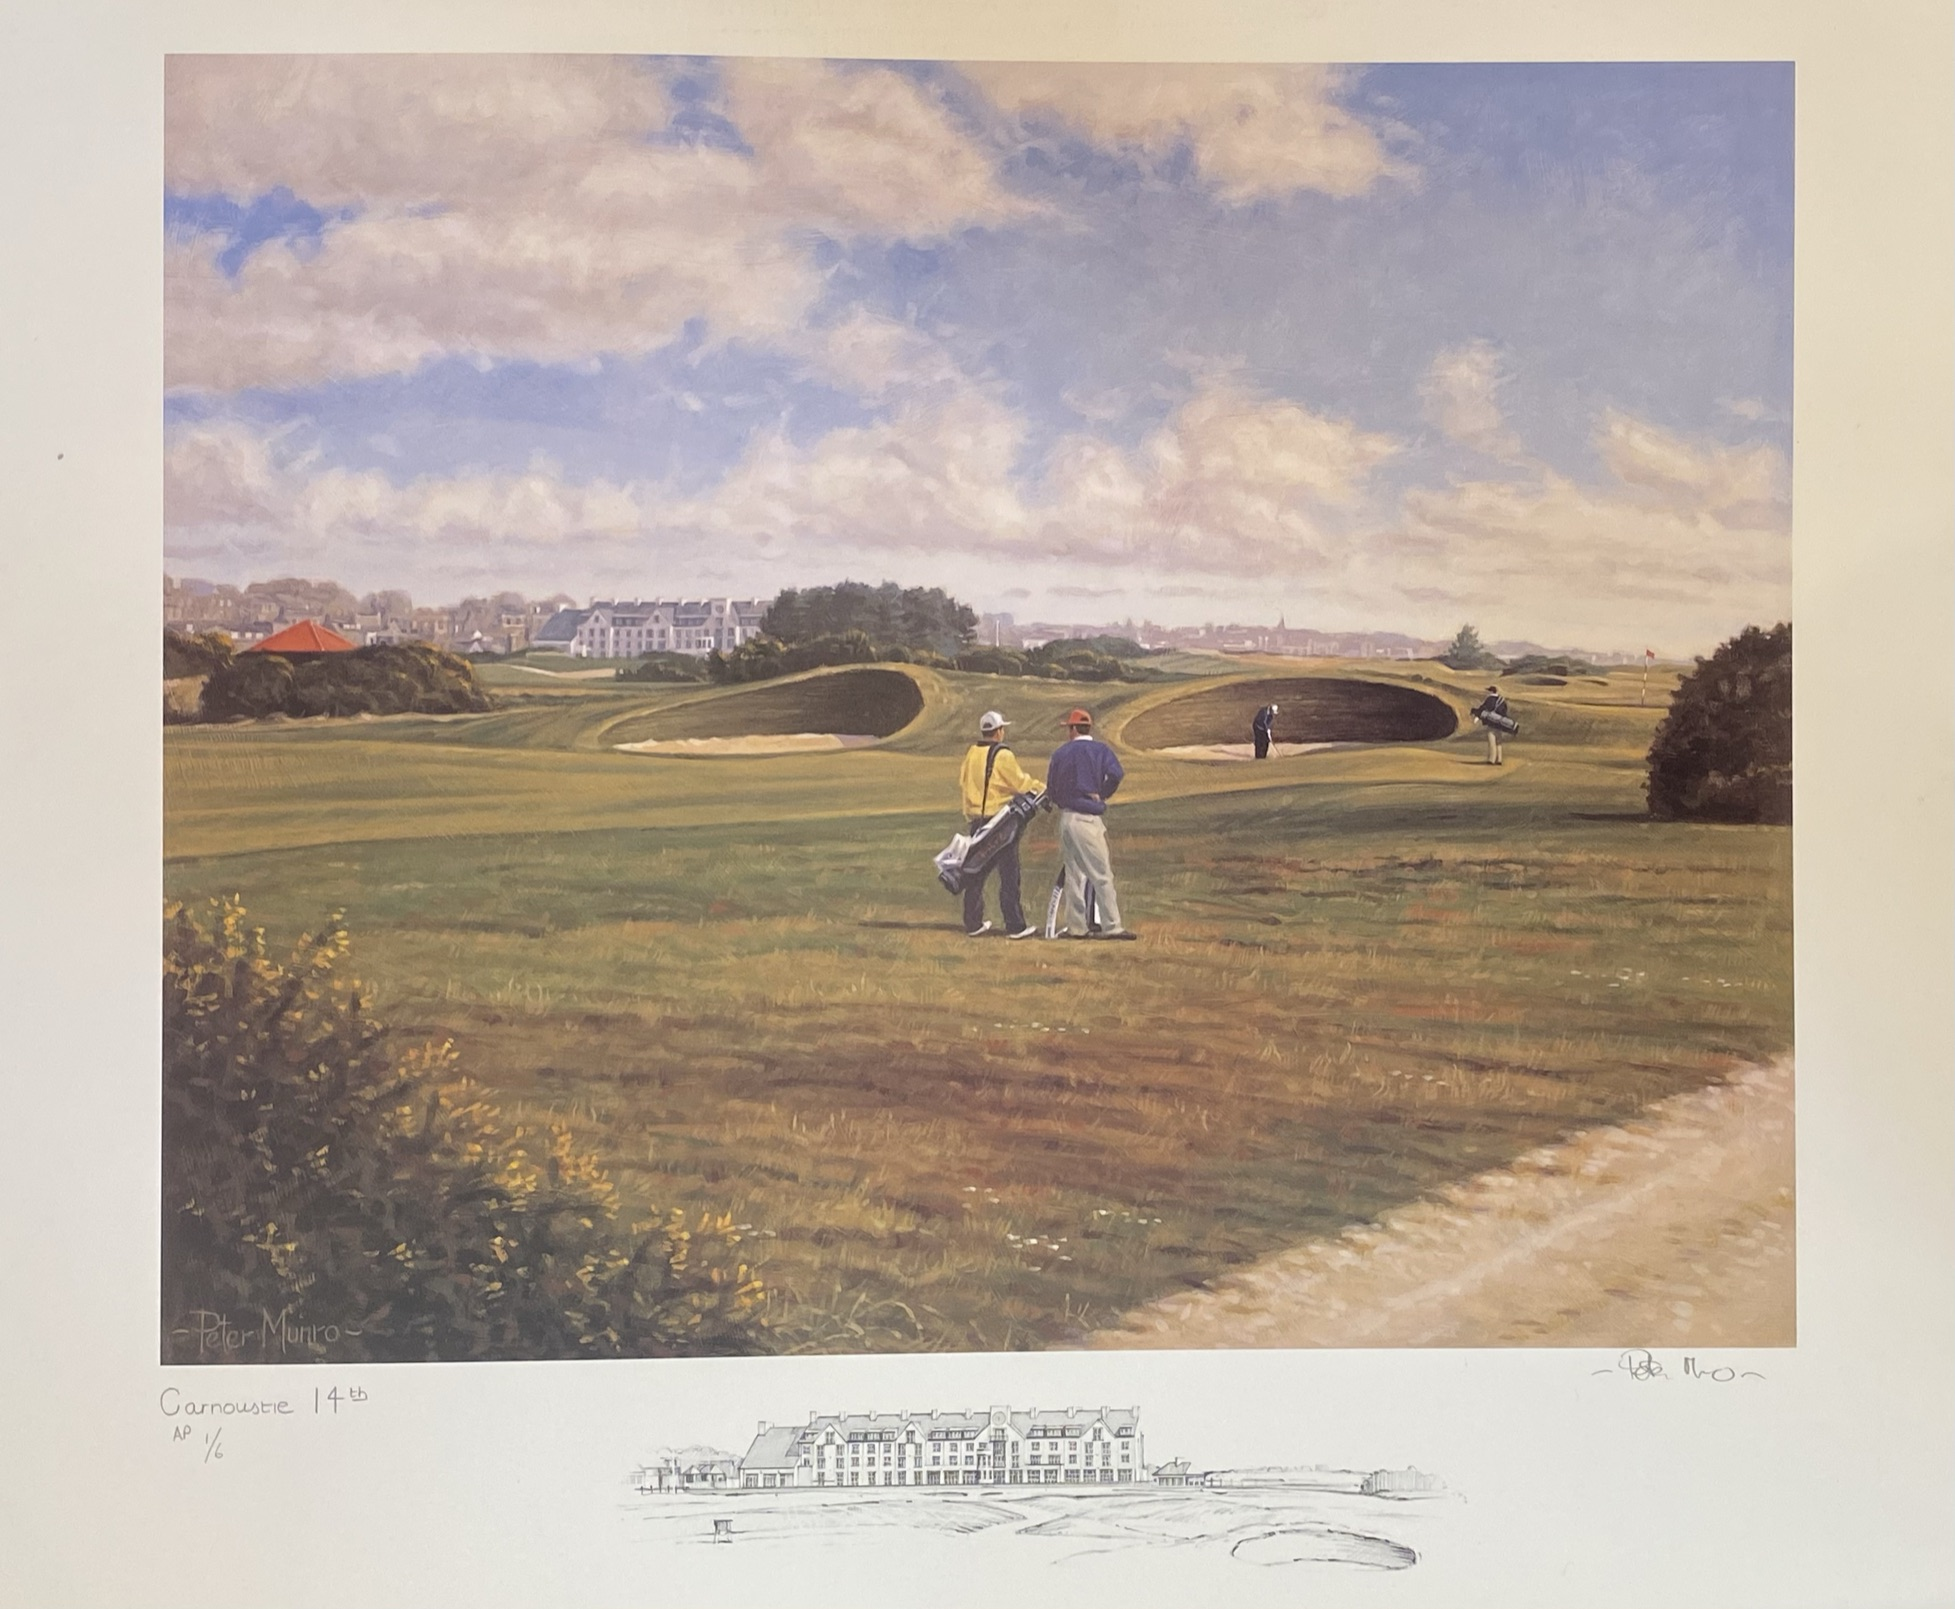 Carnoustie 14th golfing print signed A/P by Scottish artist Peter Munro - Image 2 of 4